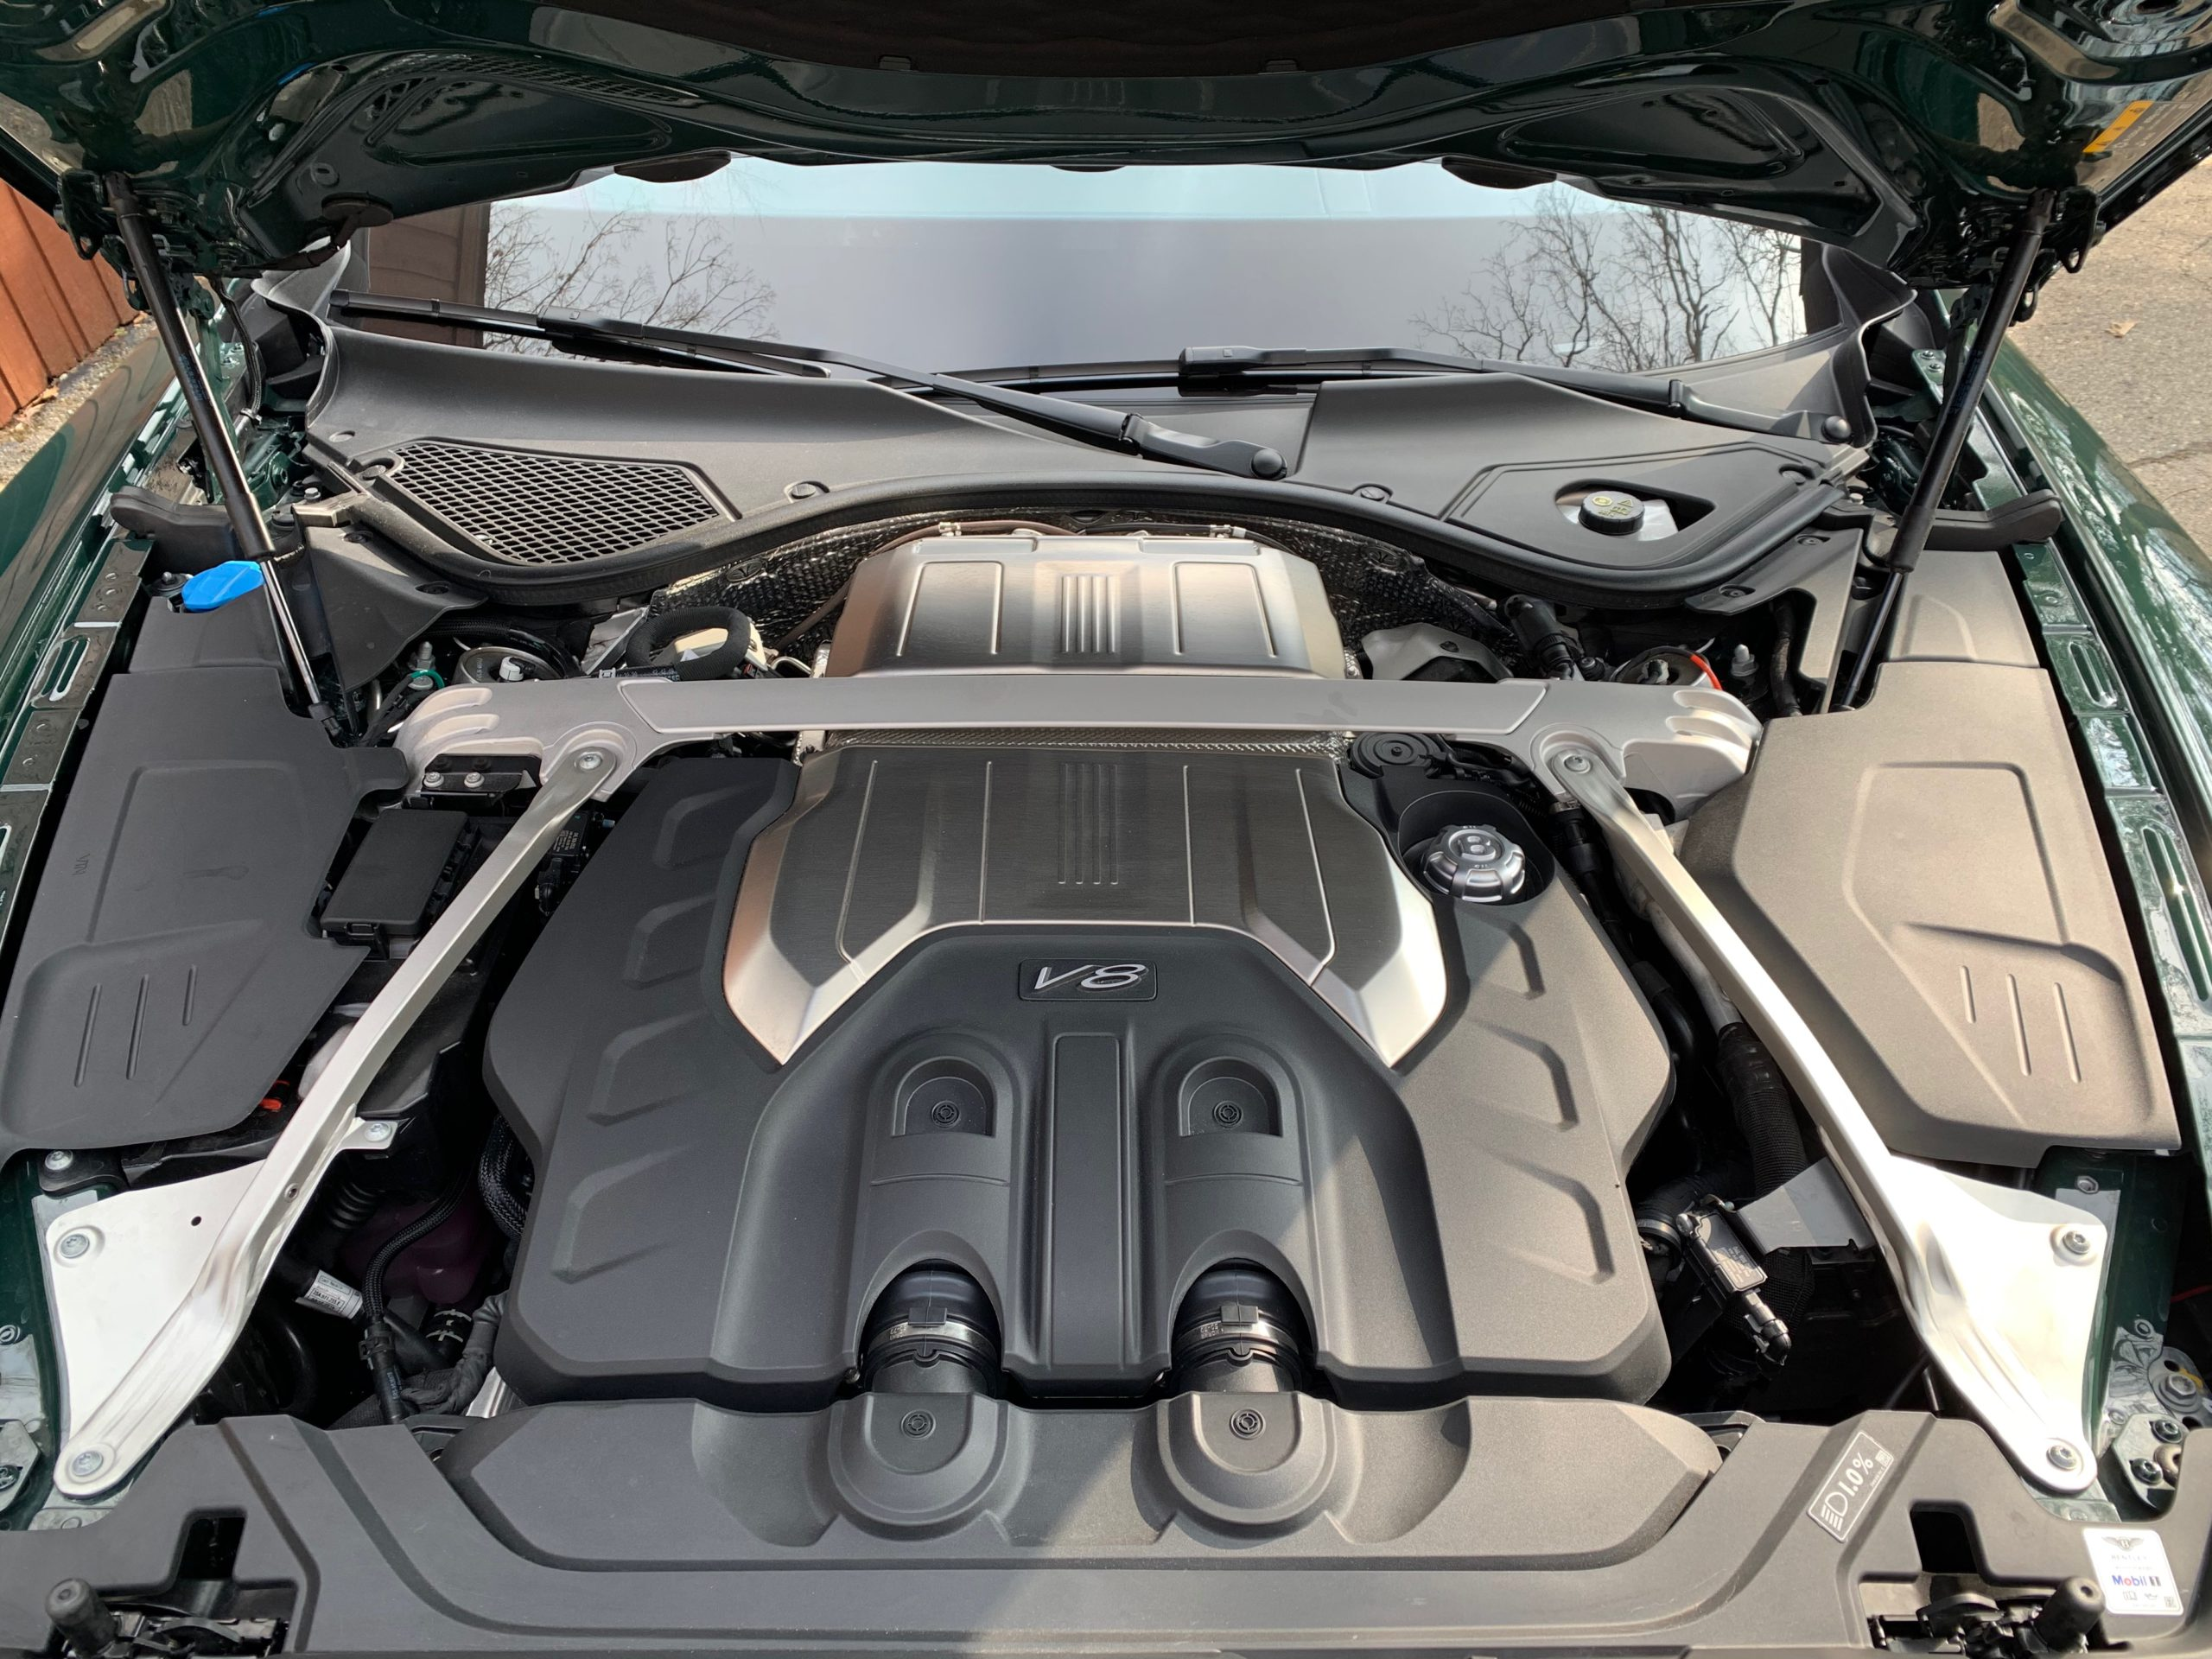 the twin-turbocharged 4.0-liter V8 of the 2021 Bentley Flying Spur V8